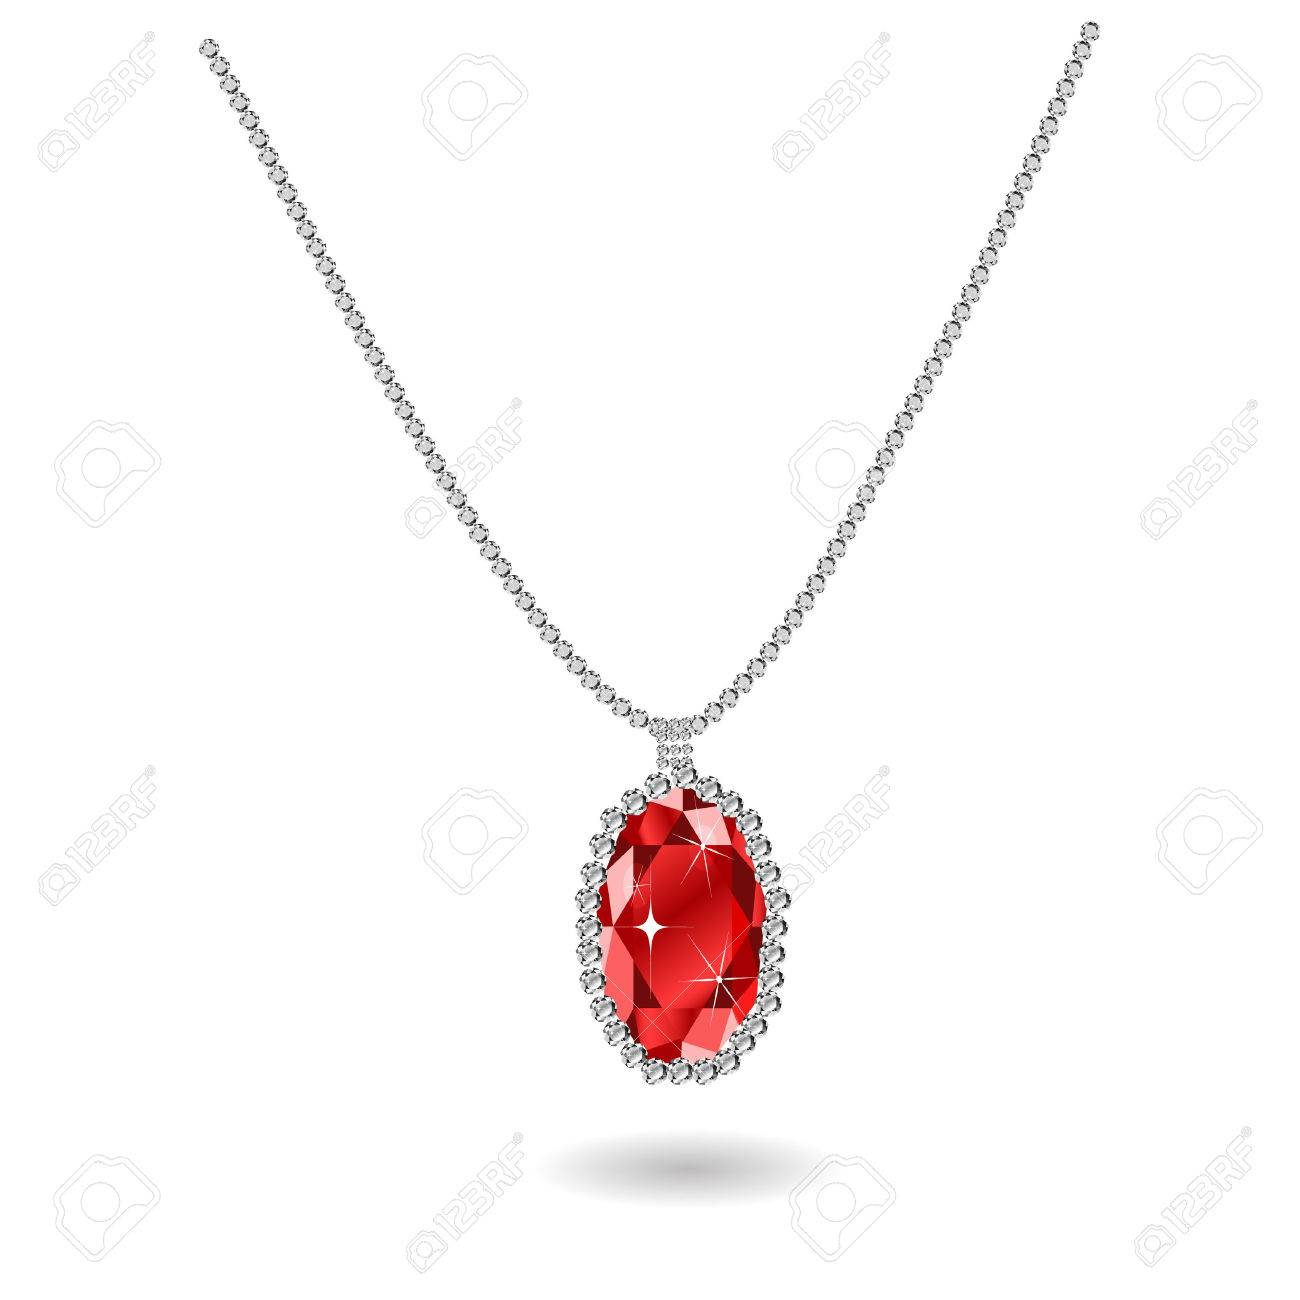 gift on july ruby red jewellery necklaces birthstone sterling card simply a necklace silver zoom